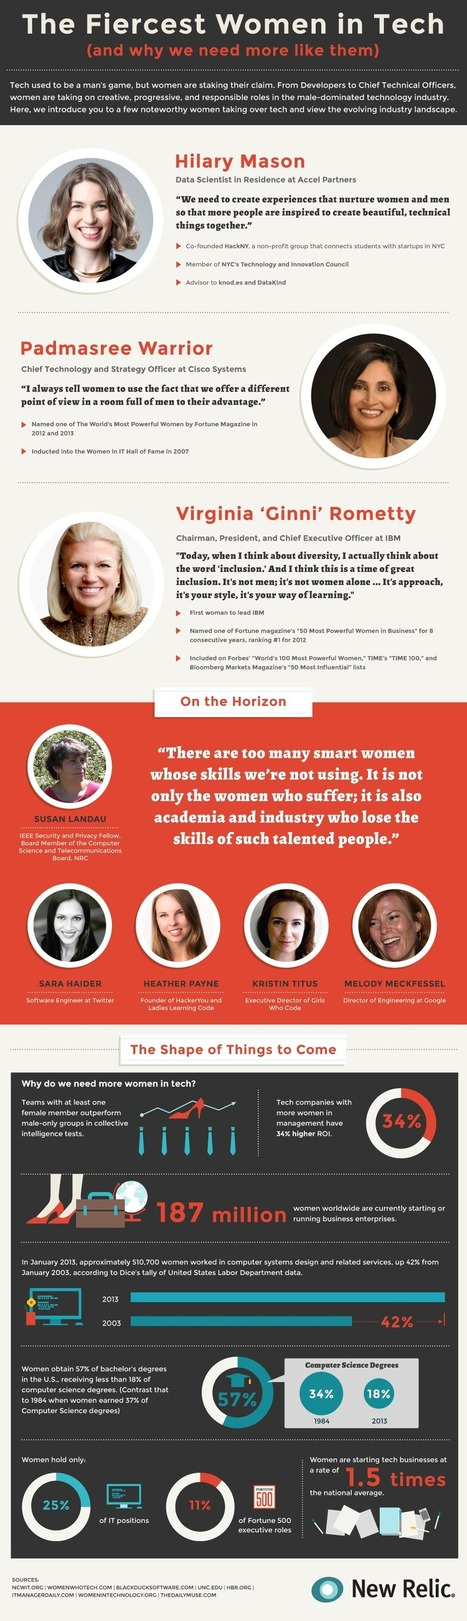 Meet The 3 Fiercest Women in Tech (and Why We Need More Like Them) Infographic | Women in Tech | Scoop.it